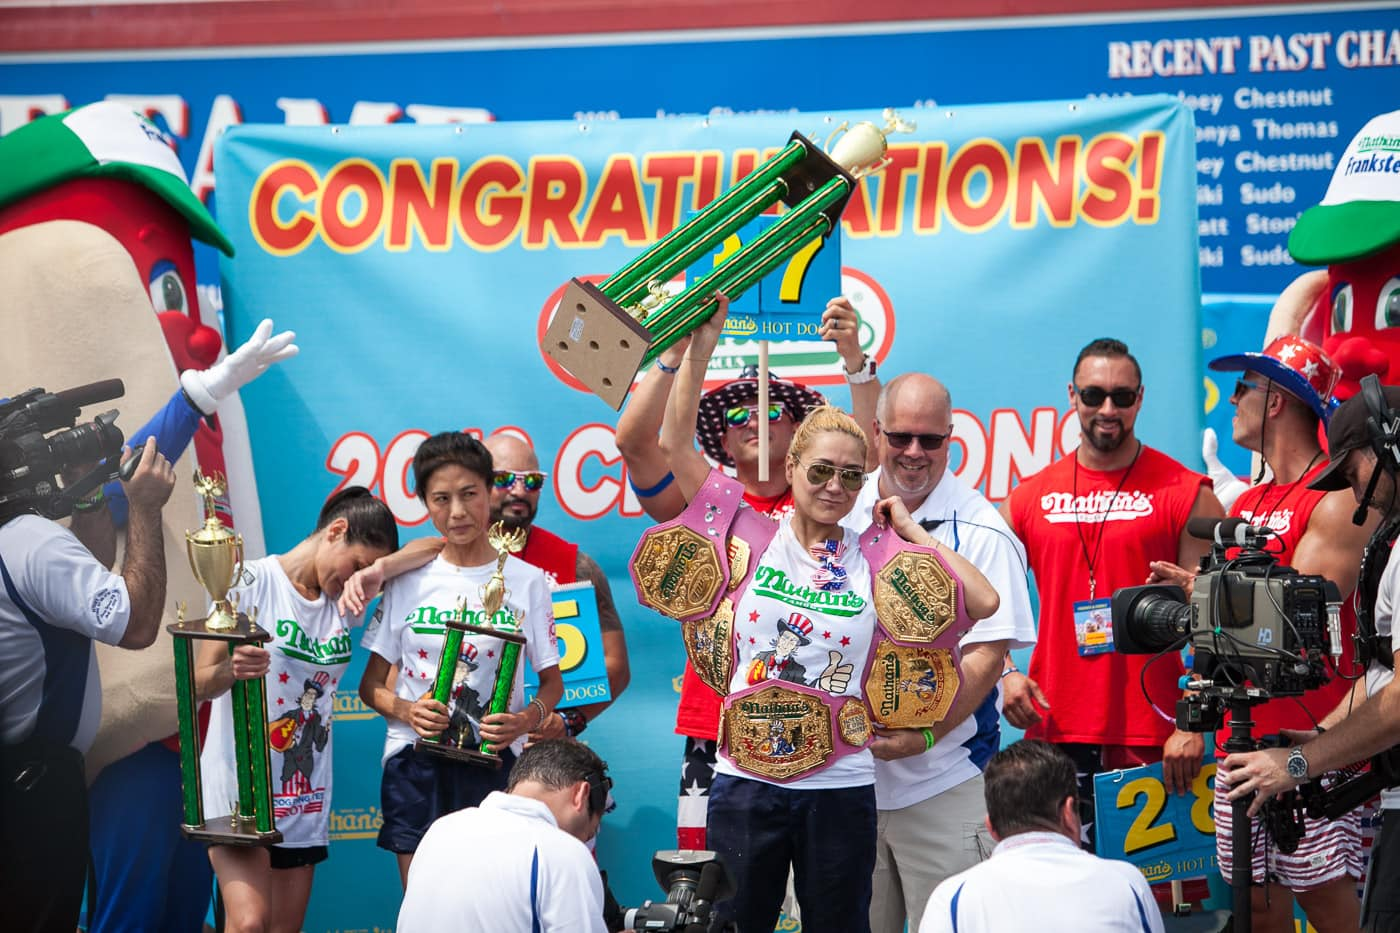 Miki Sudo wins the 2018 Nathan's Famous hot dog eating contest on the Fourth of July at Coney Island in Brooklyn, New York.